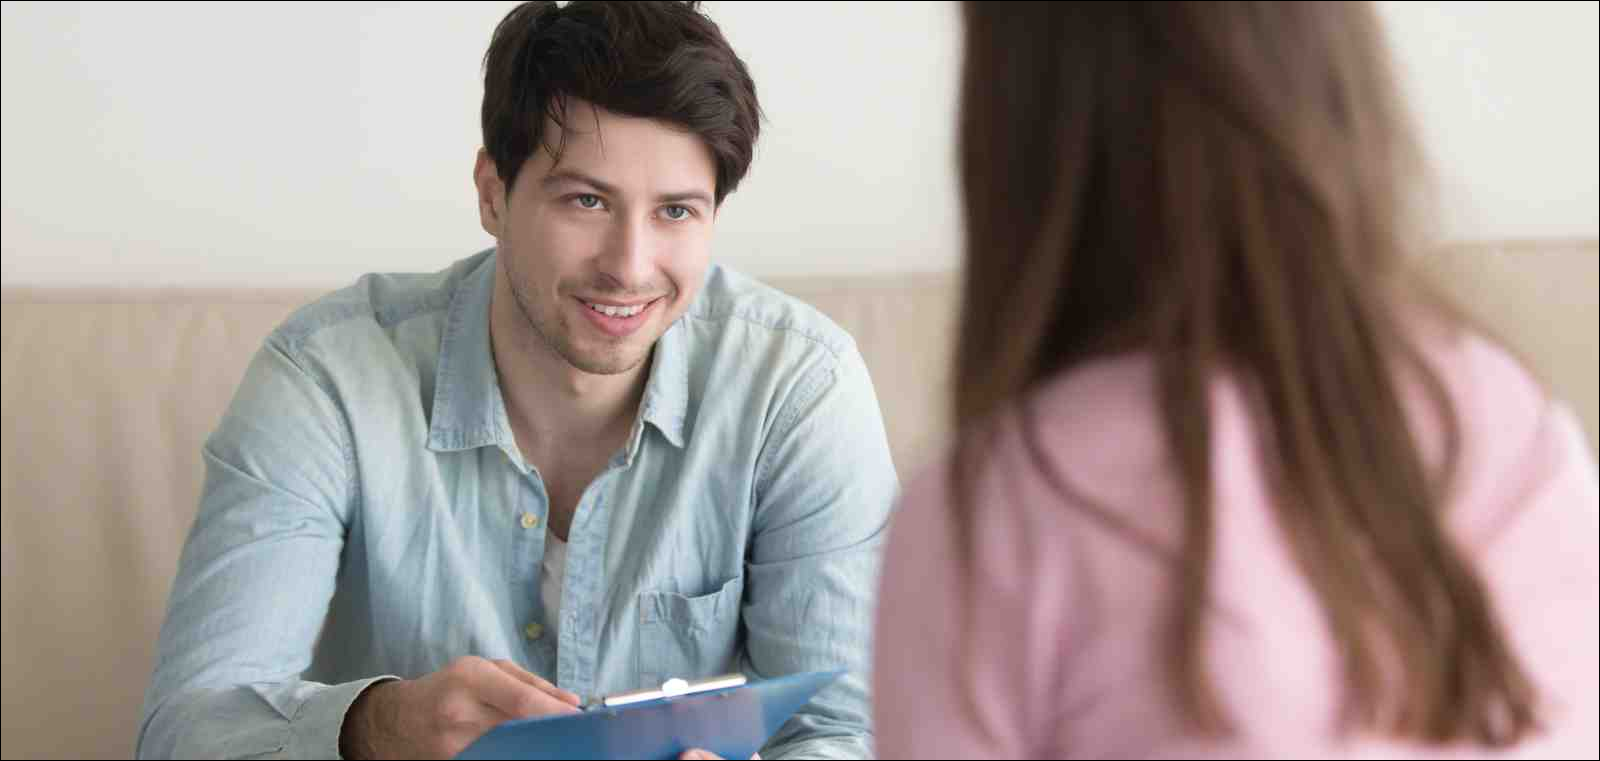 Young smiling man sitting on couch opposite woman, holding clipboard